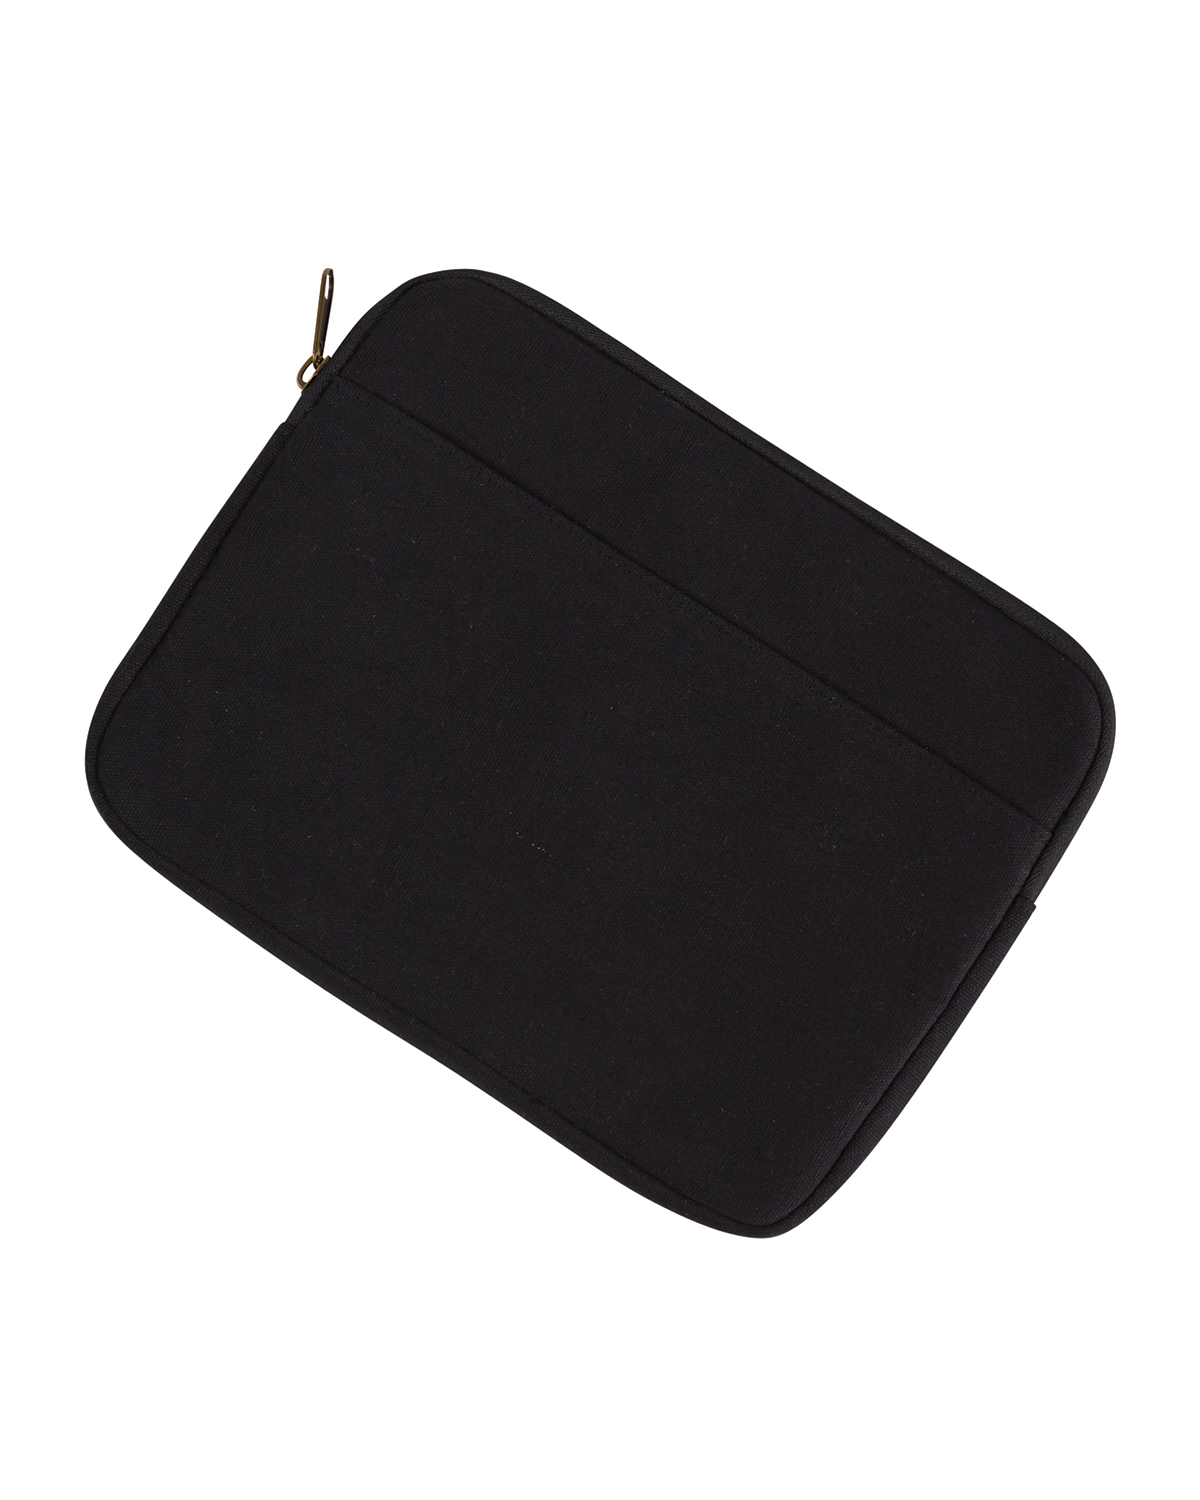 BAGedge BE059 - 10 oz. Canvas Tablet Sleeve